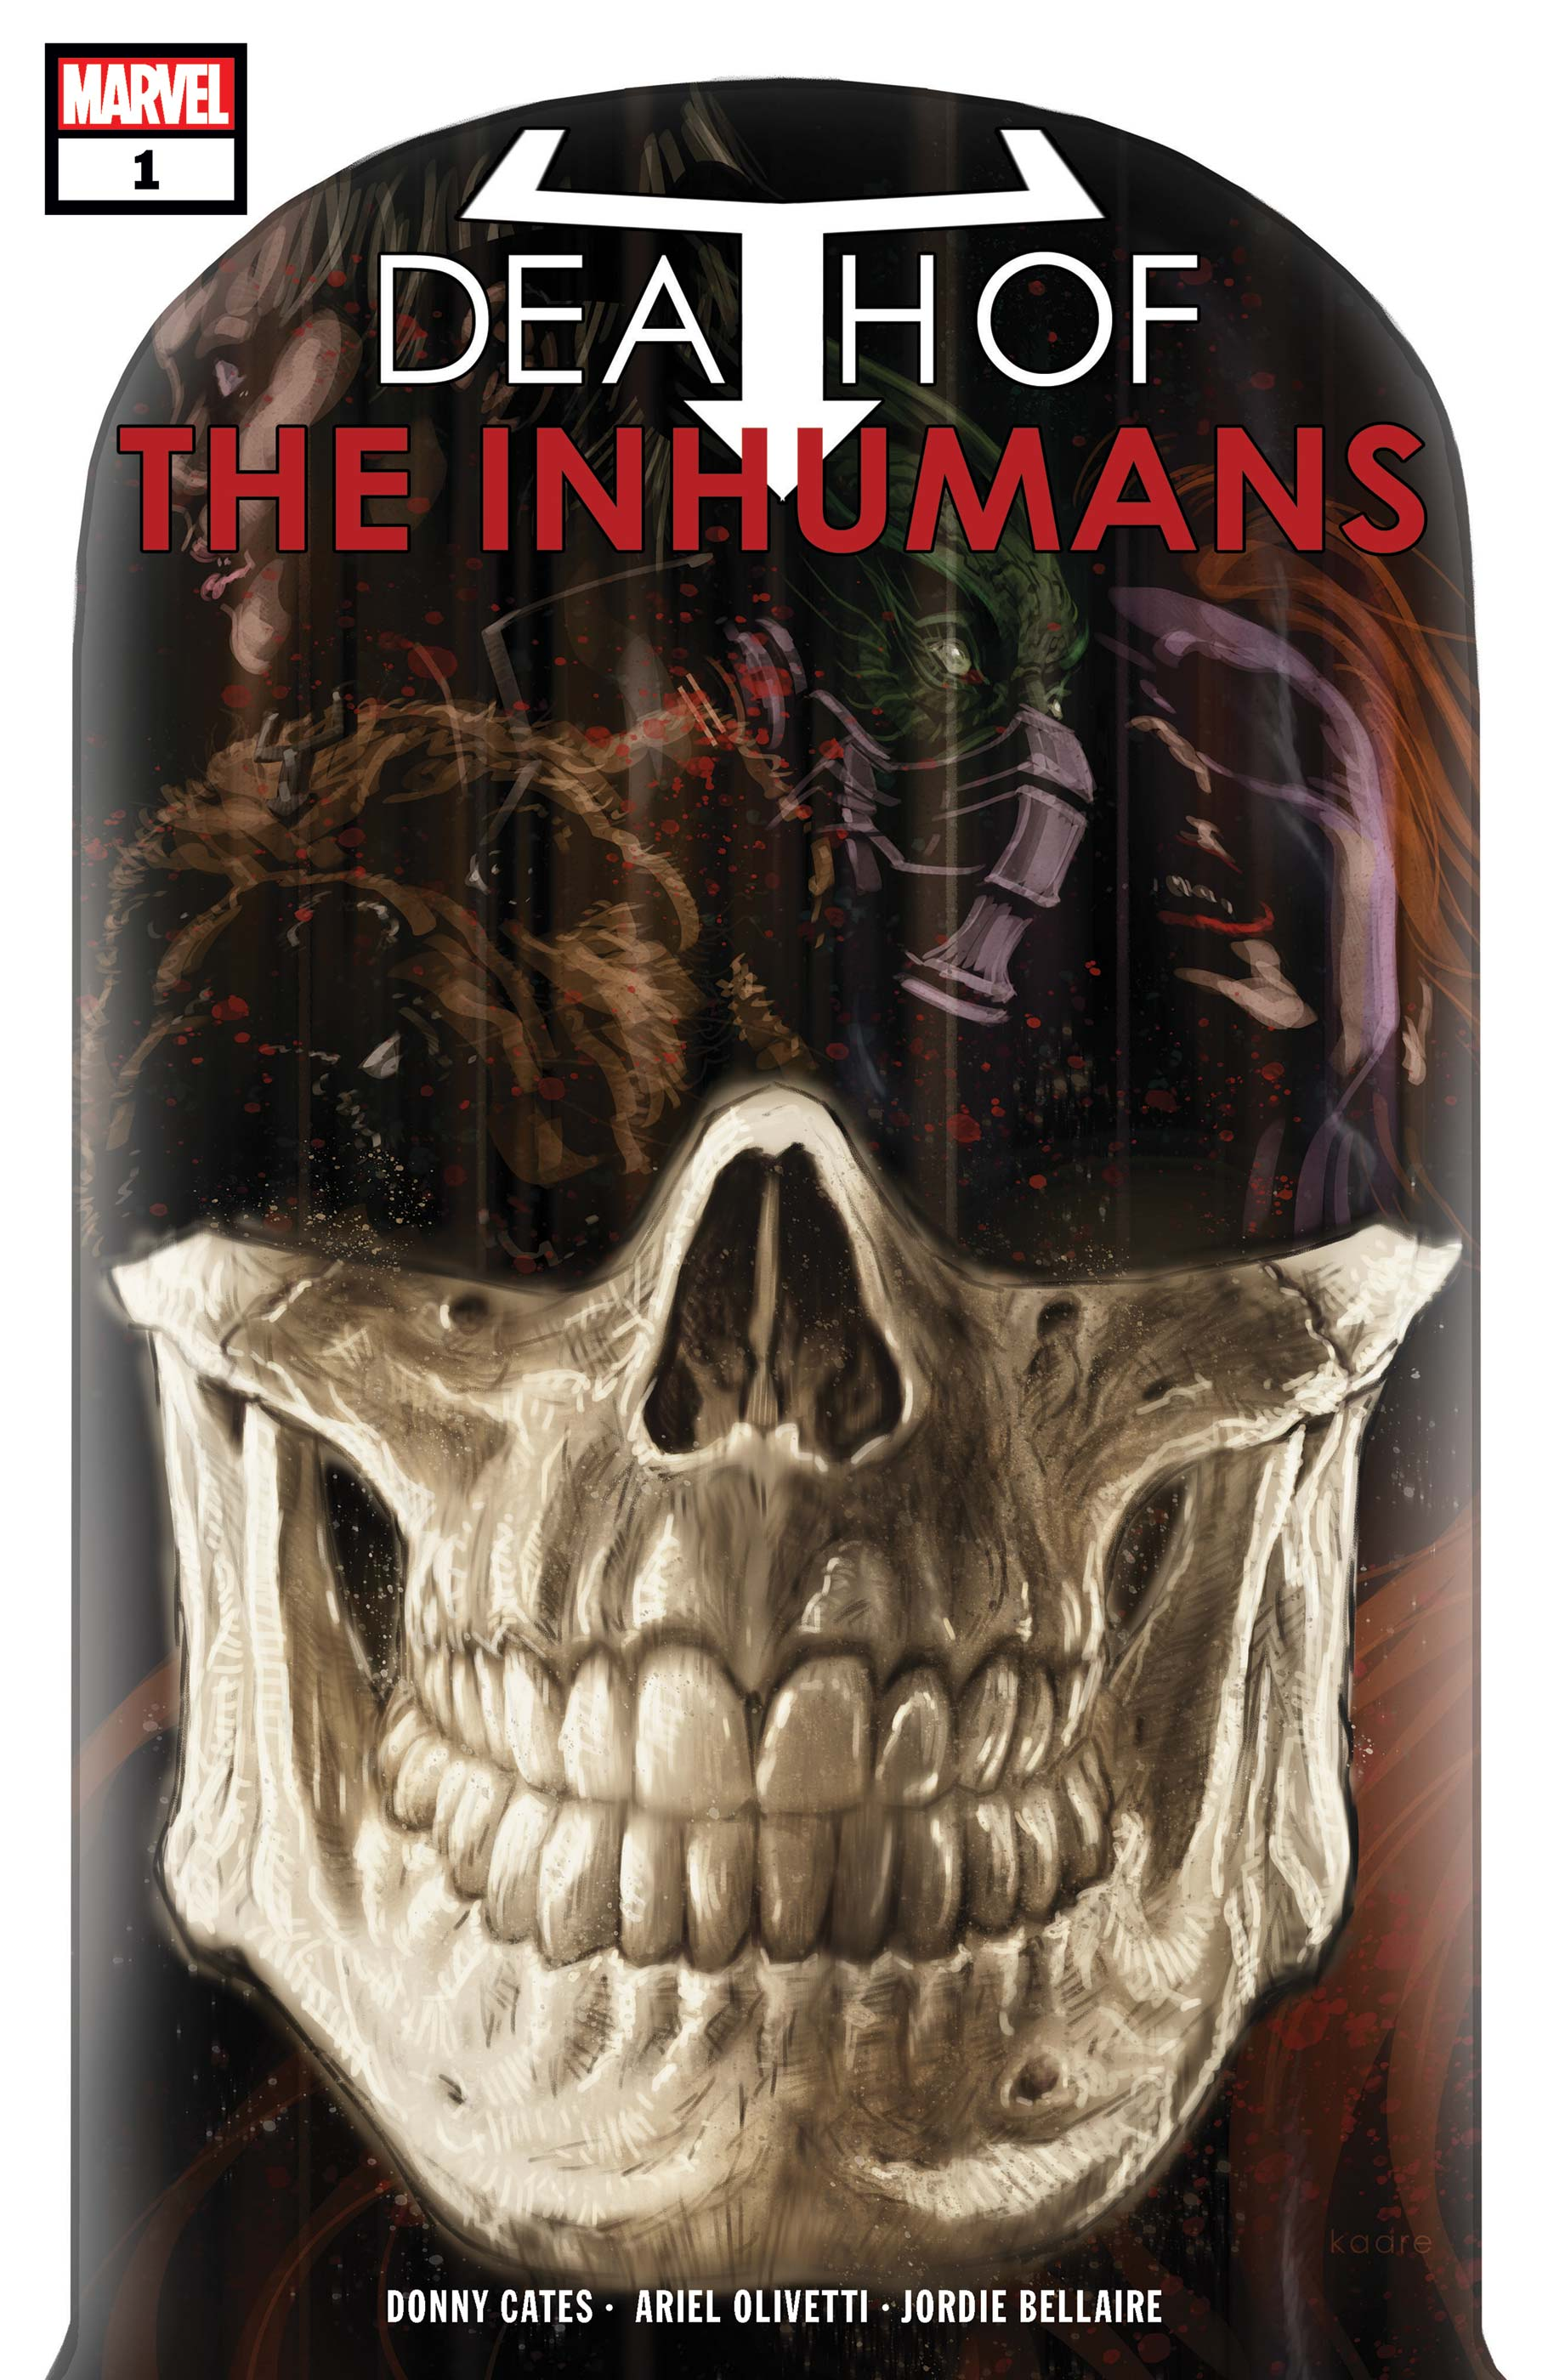 Death of the Inhumans (2018) #1